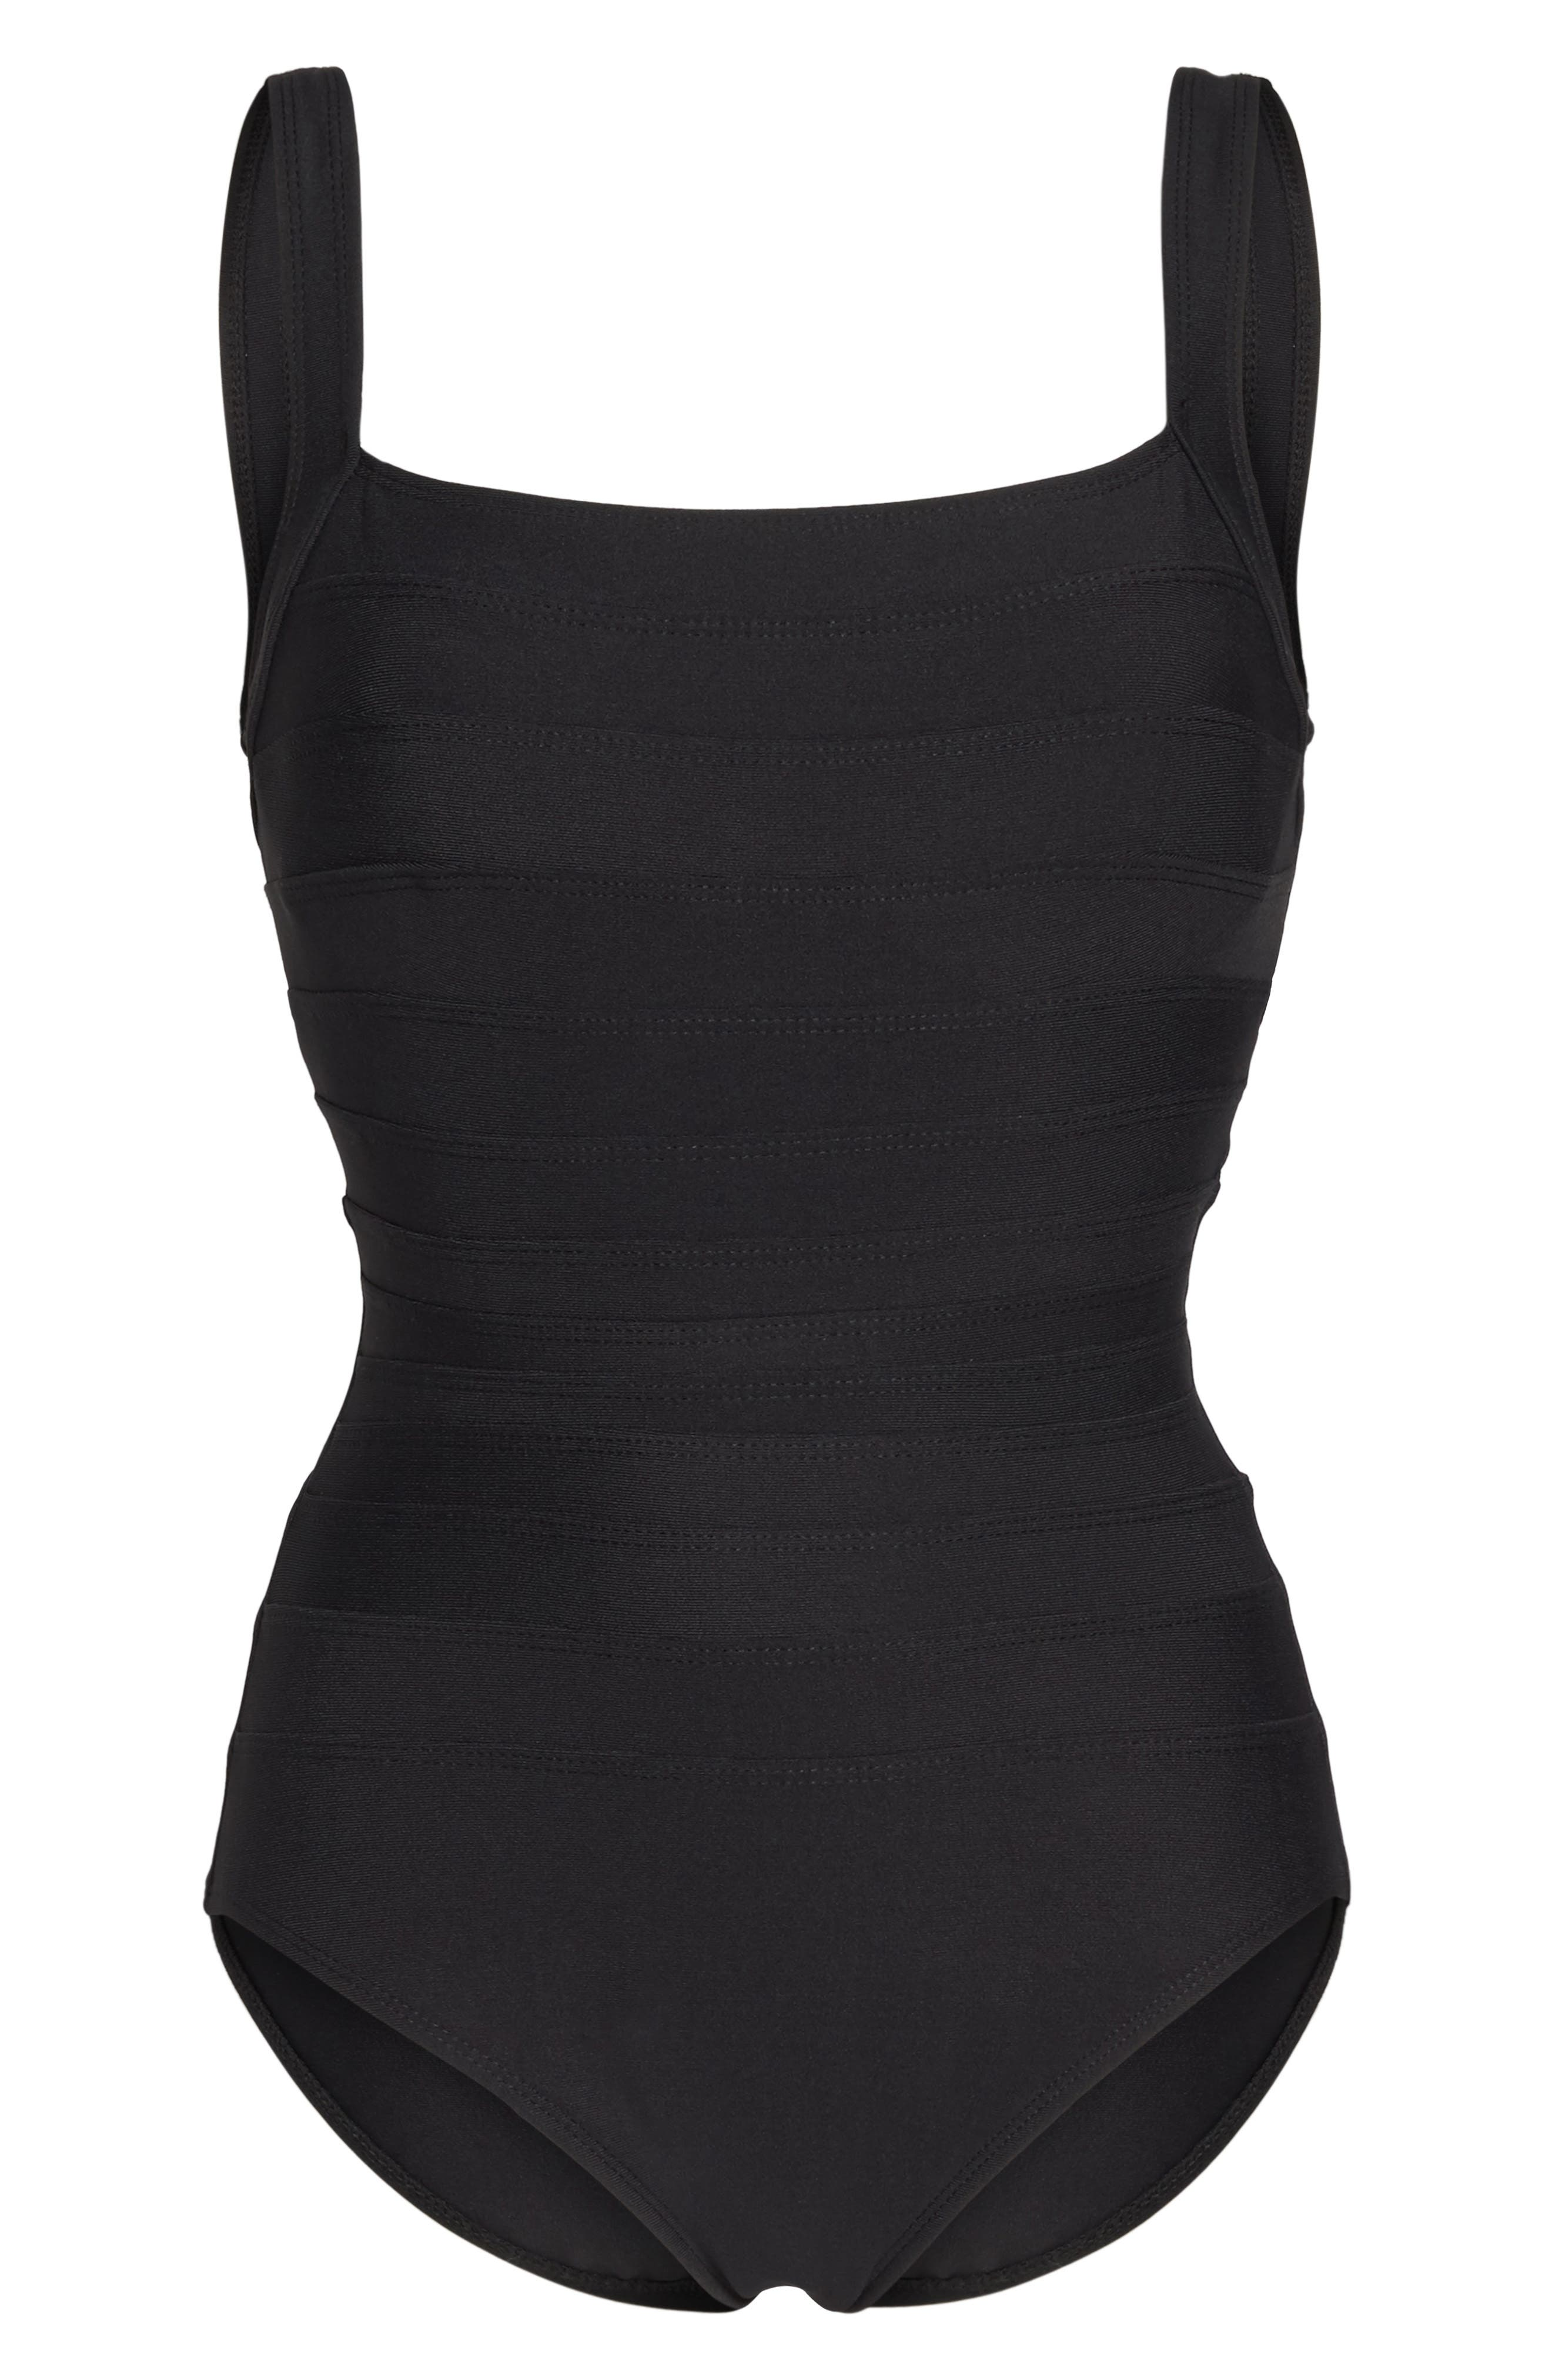 'Spectra' Banded Maillot,                             Alternate thumbnail 7, color,                             BLACK TONES